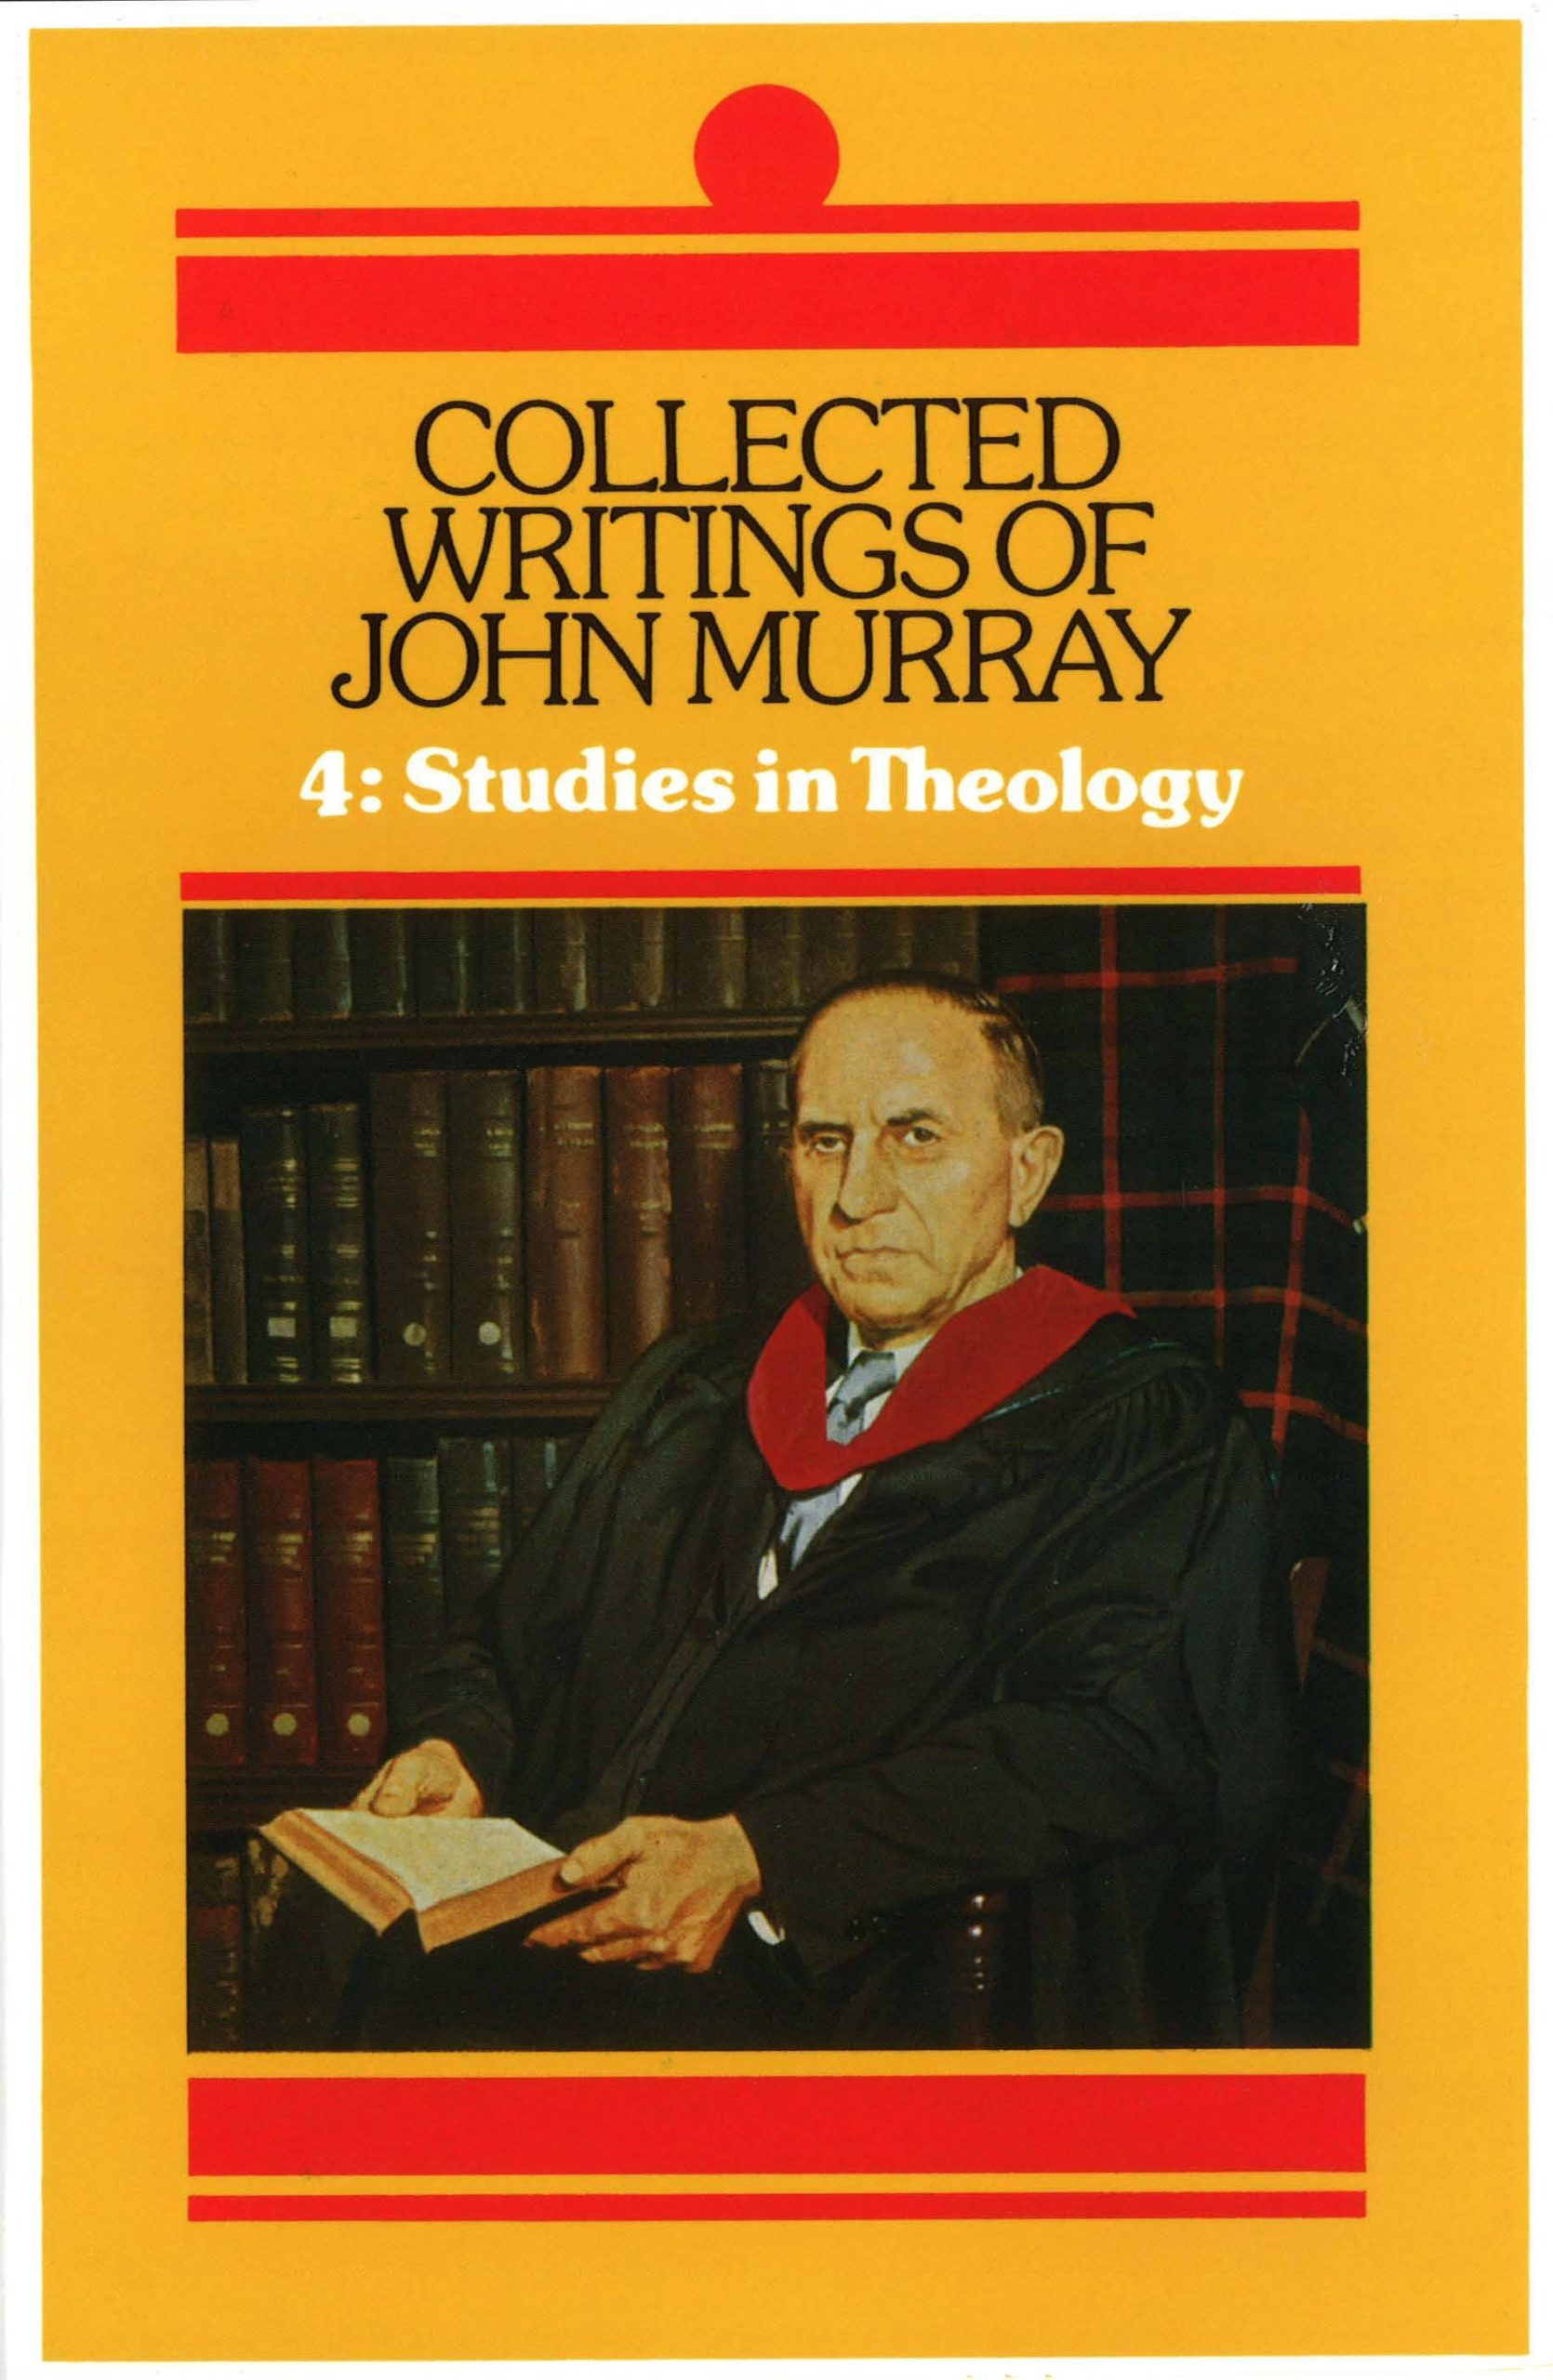 Book Cover For 'Collected Writings of John Murray'